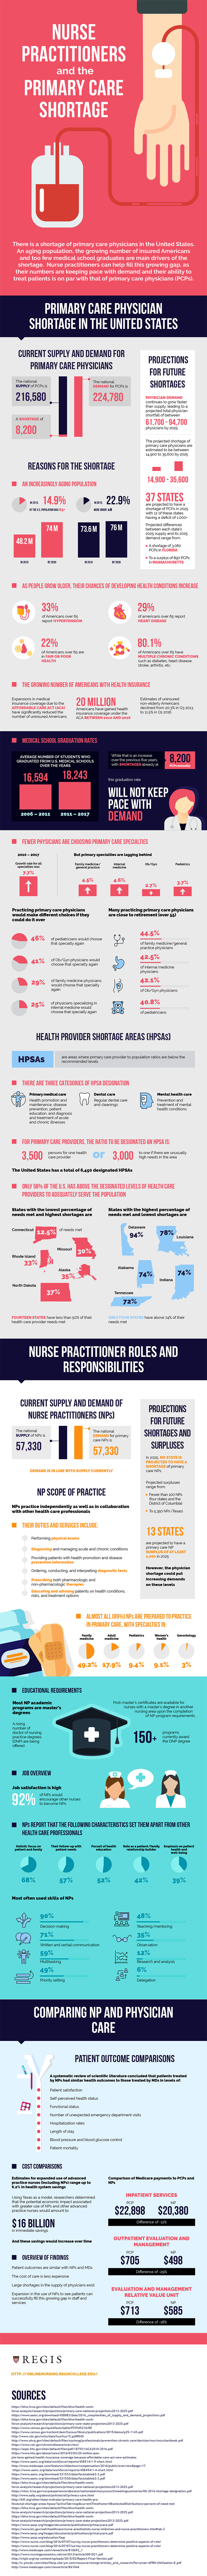 Nurse Practitioners and the Primary Care Shortage